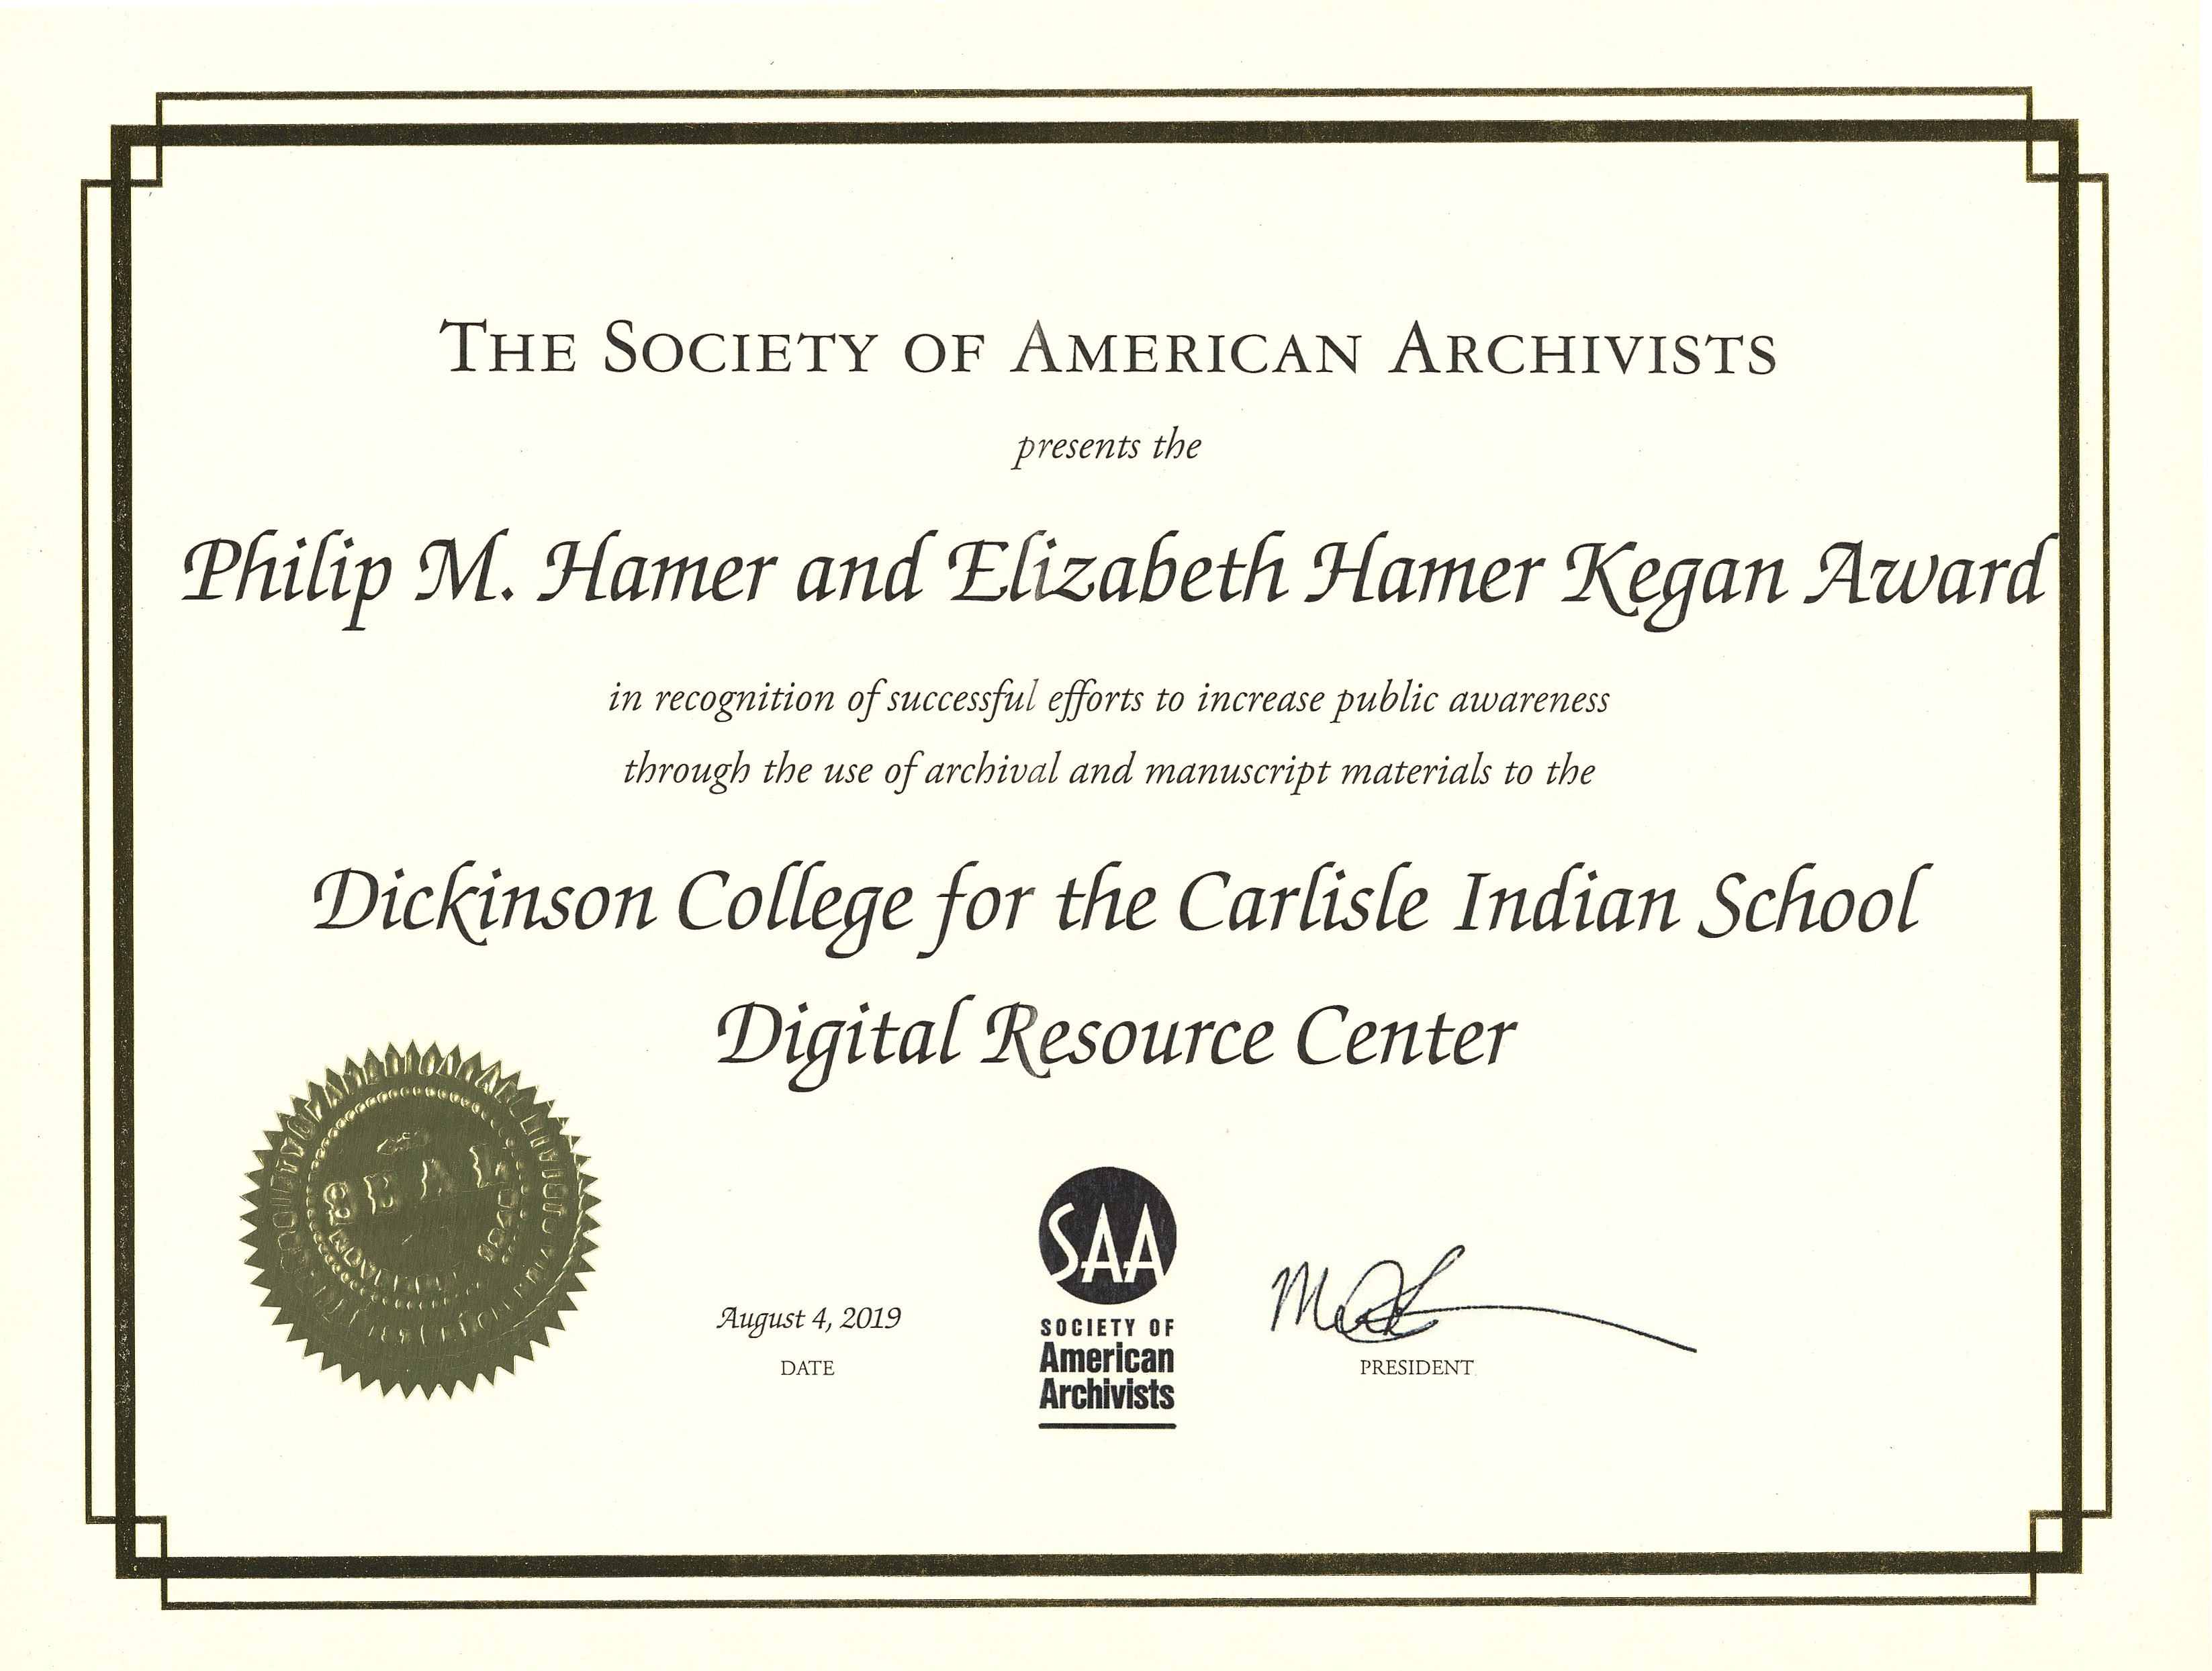 Certificate presenting an award to Dickinson College for the Carlisle Indian School Digital Resource Center